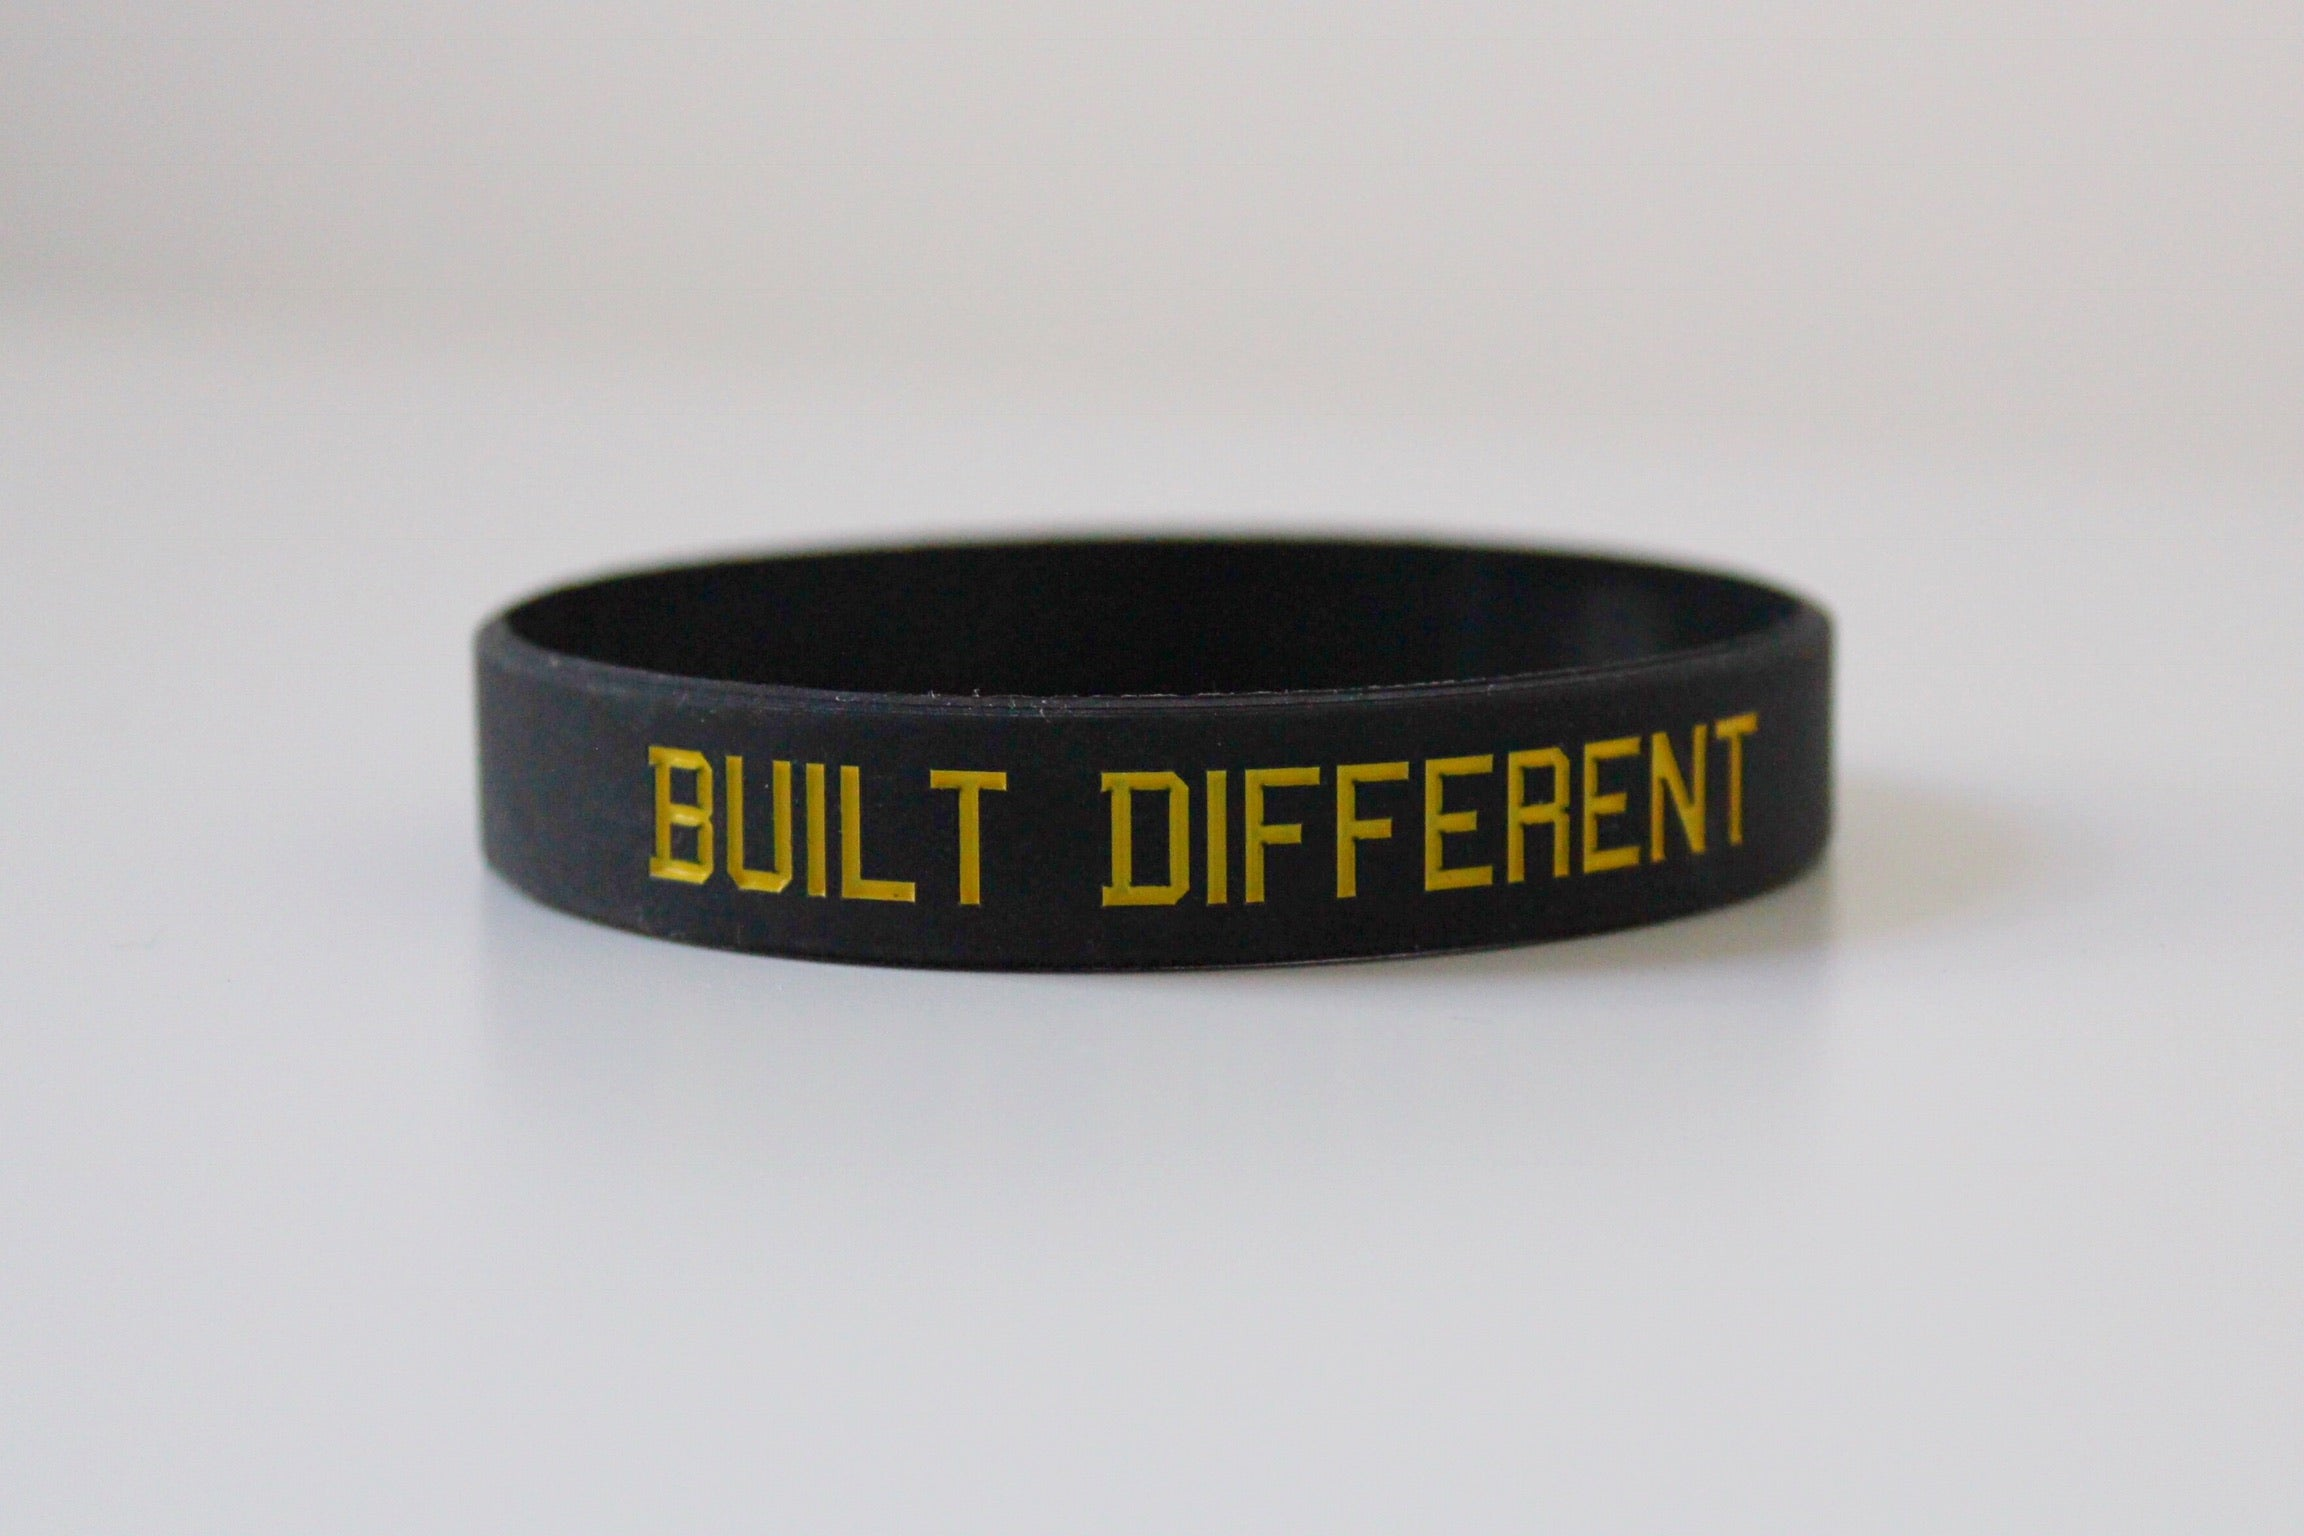 Built Different Wristbands